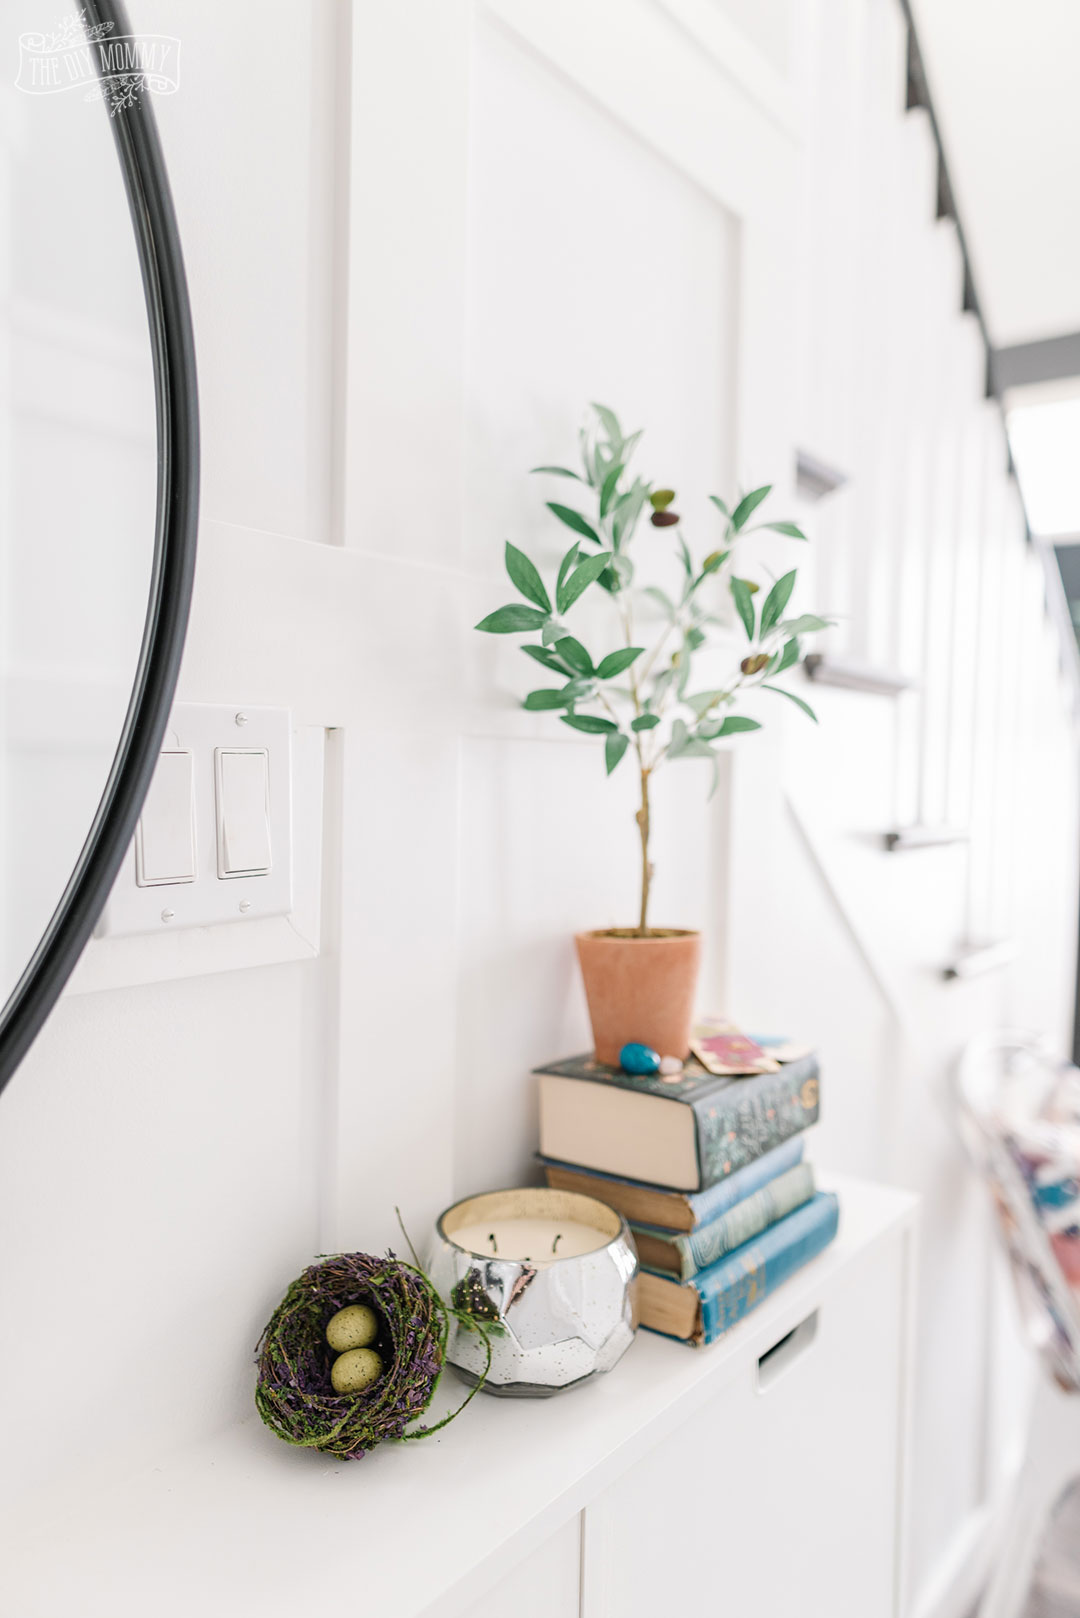 Learn how to make your home feel calm and safe this Spring while using what you have | Spring Home Tour Decor Ideas